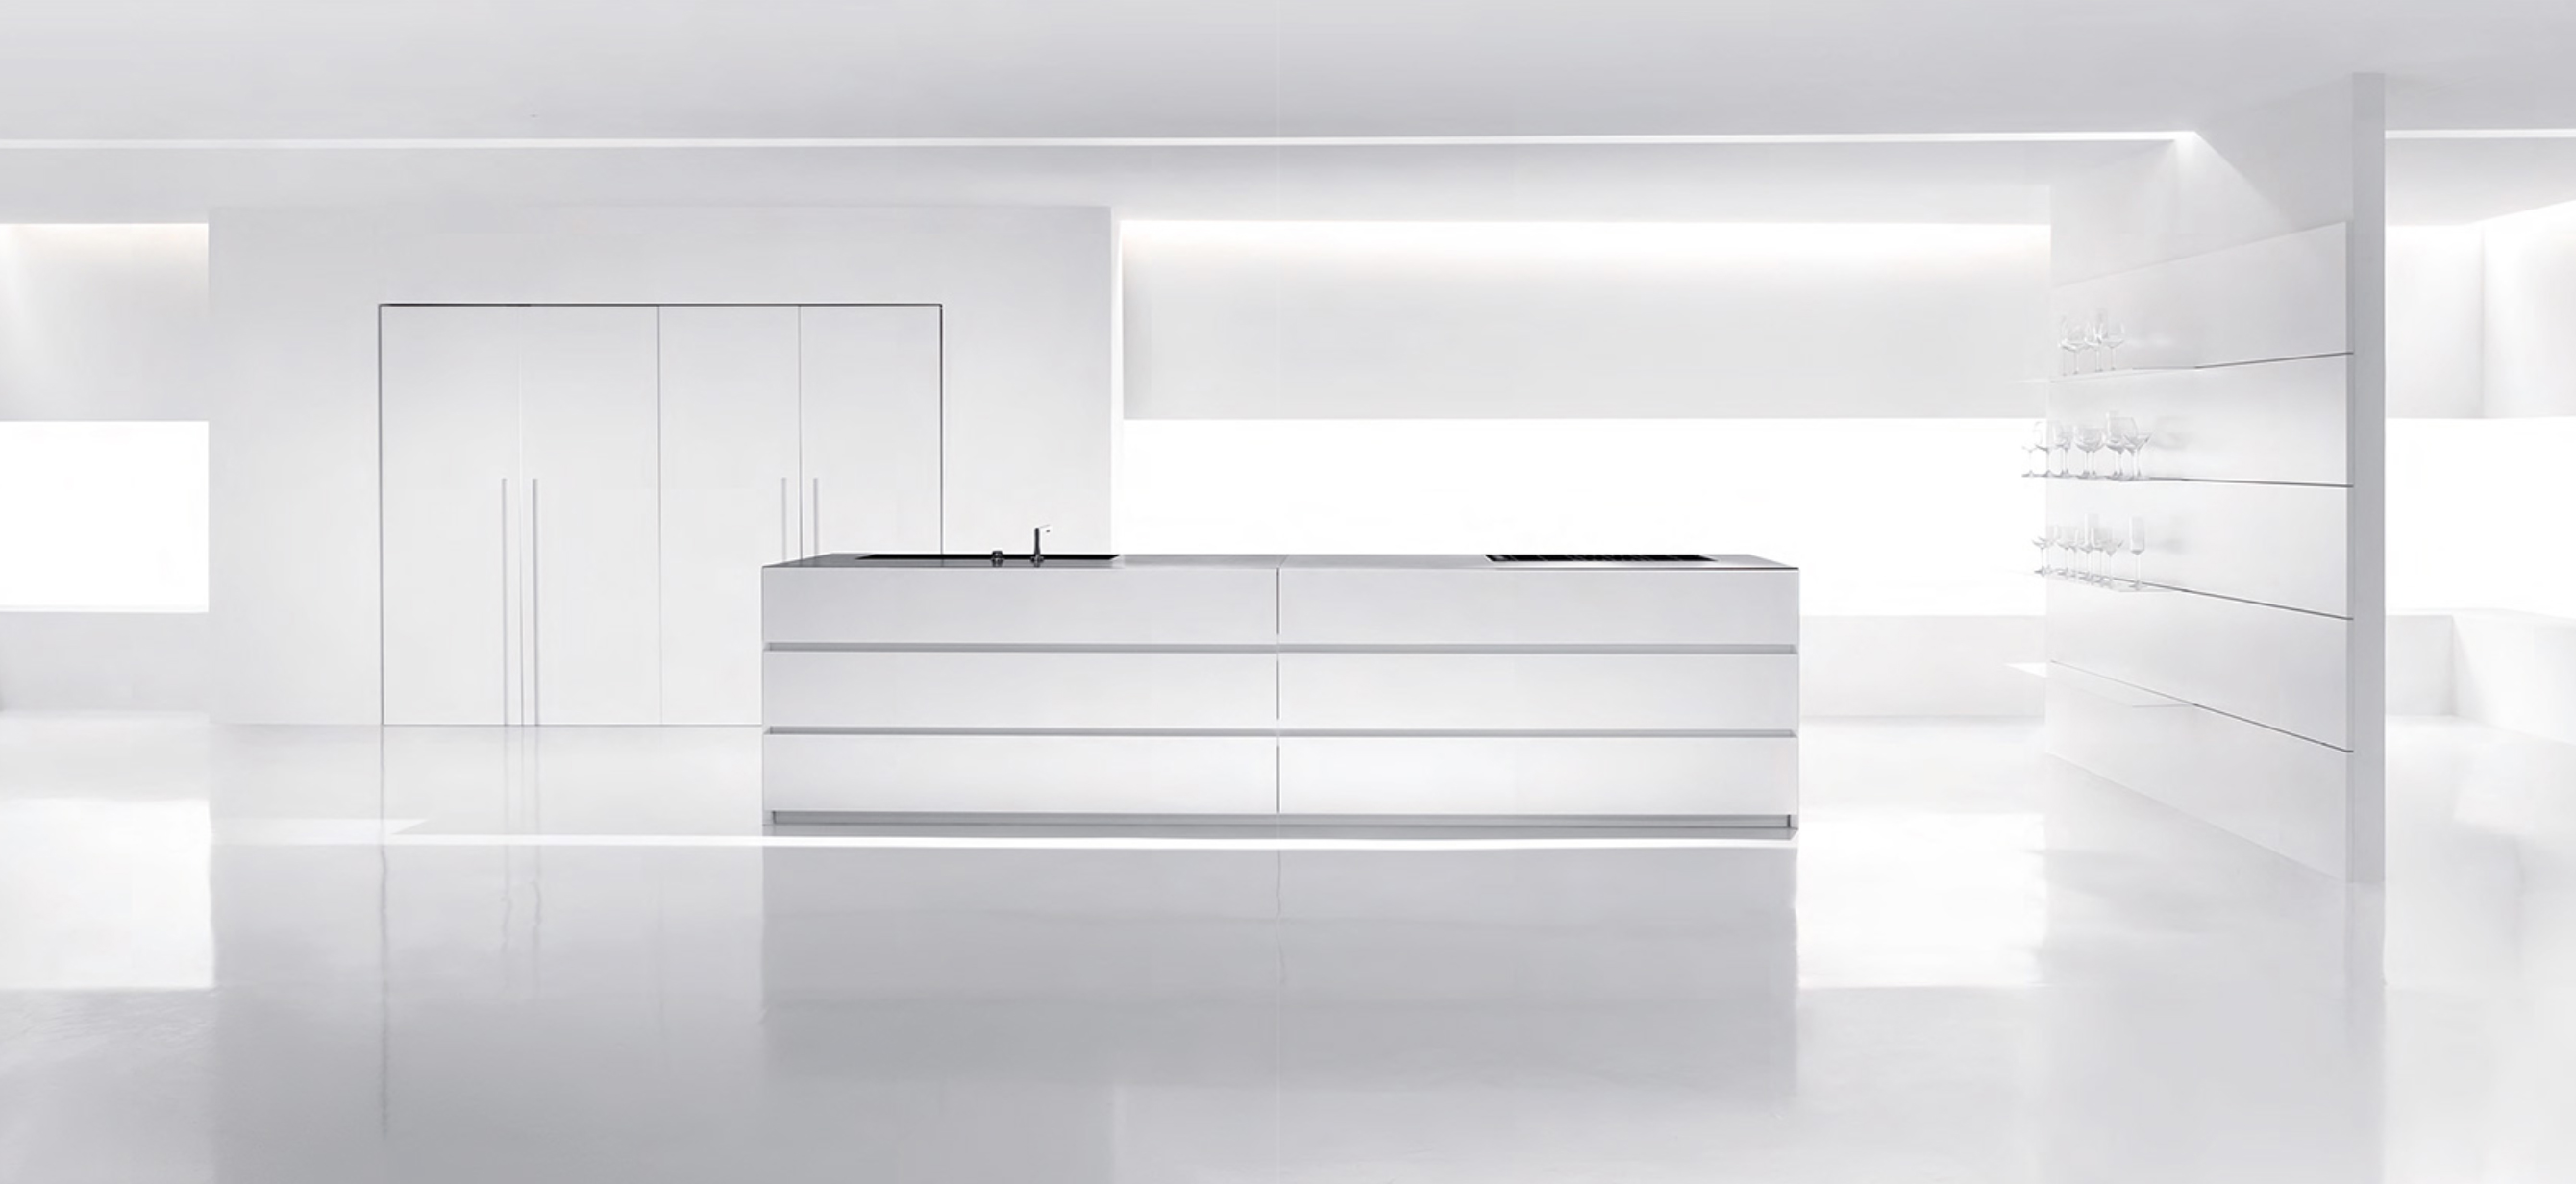 Global cooling. How can we find the warmth of the colours in kitchen furniture design?